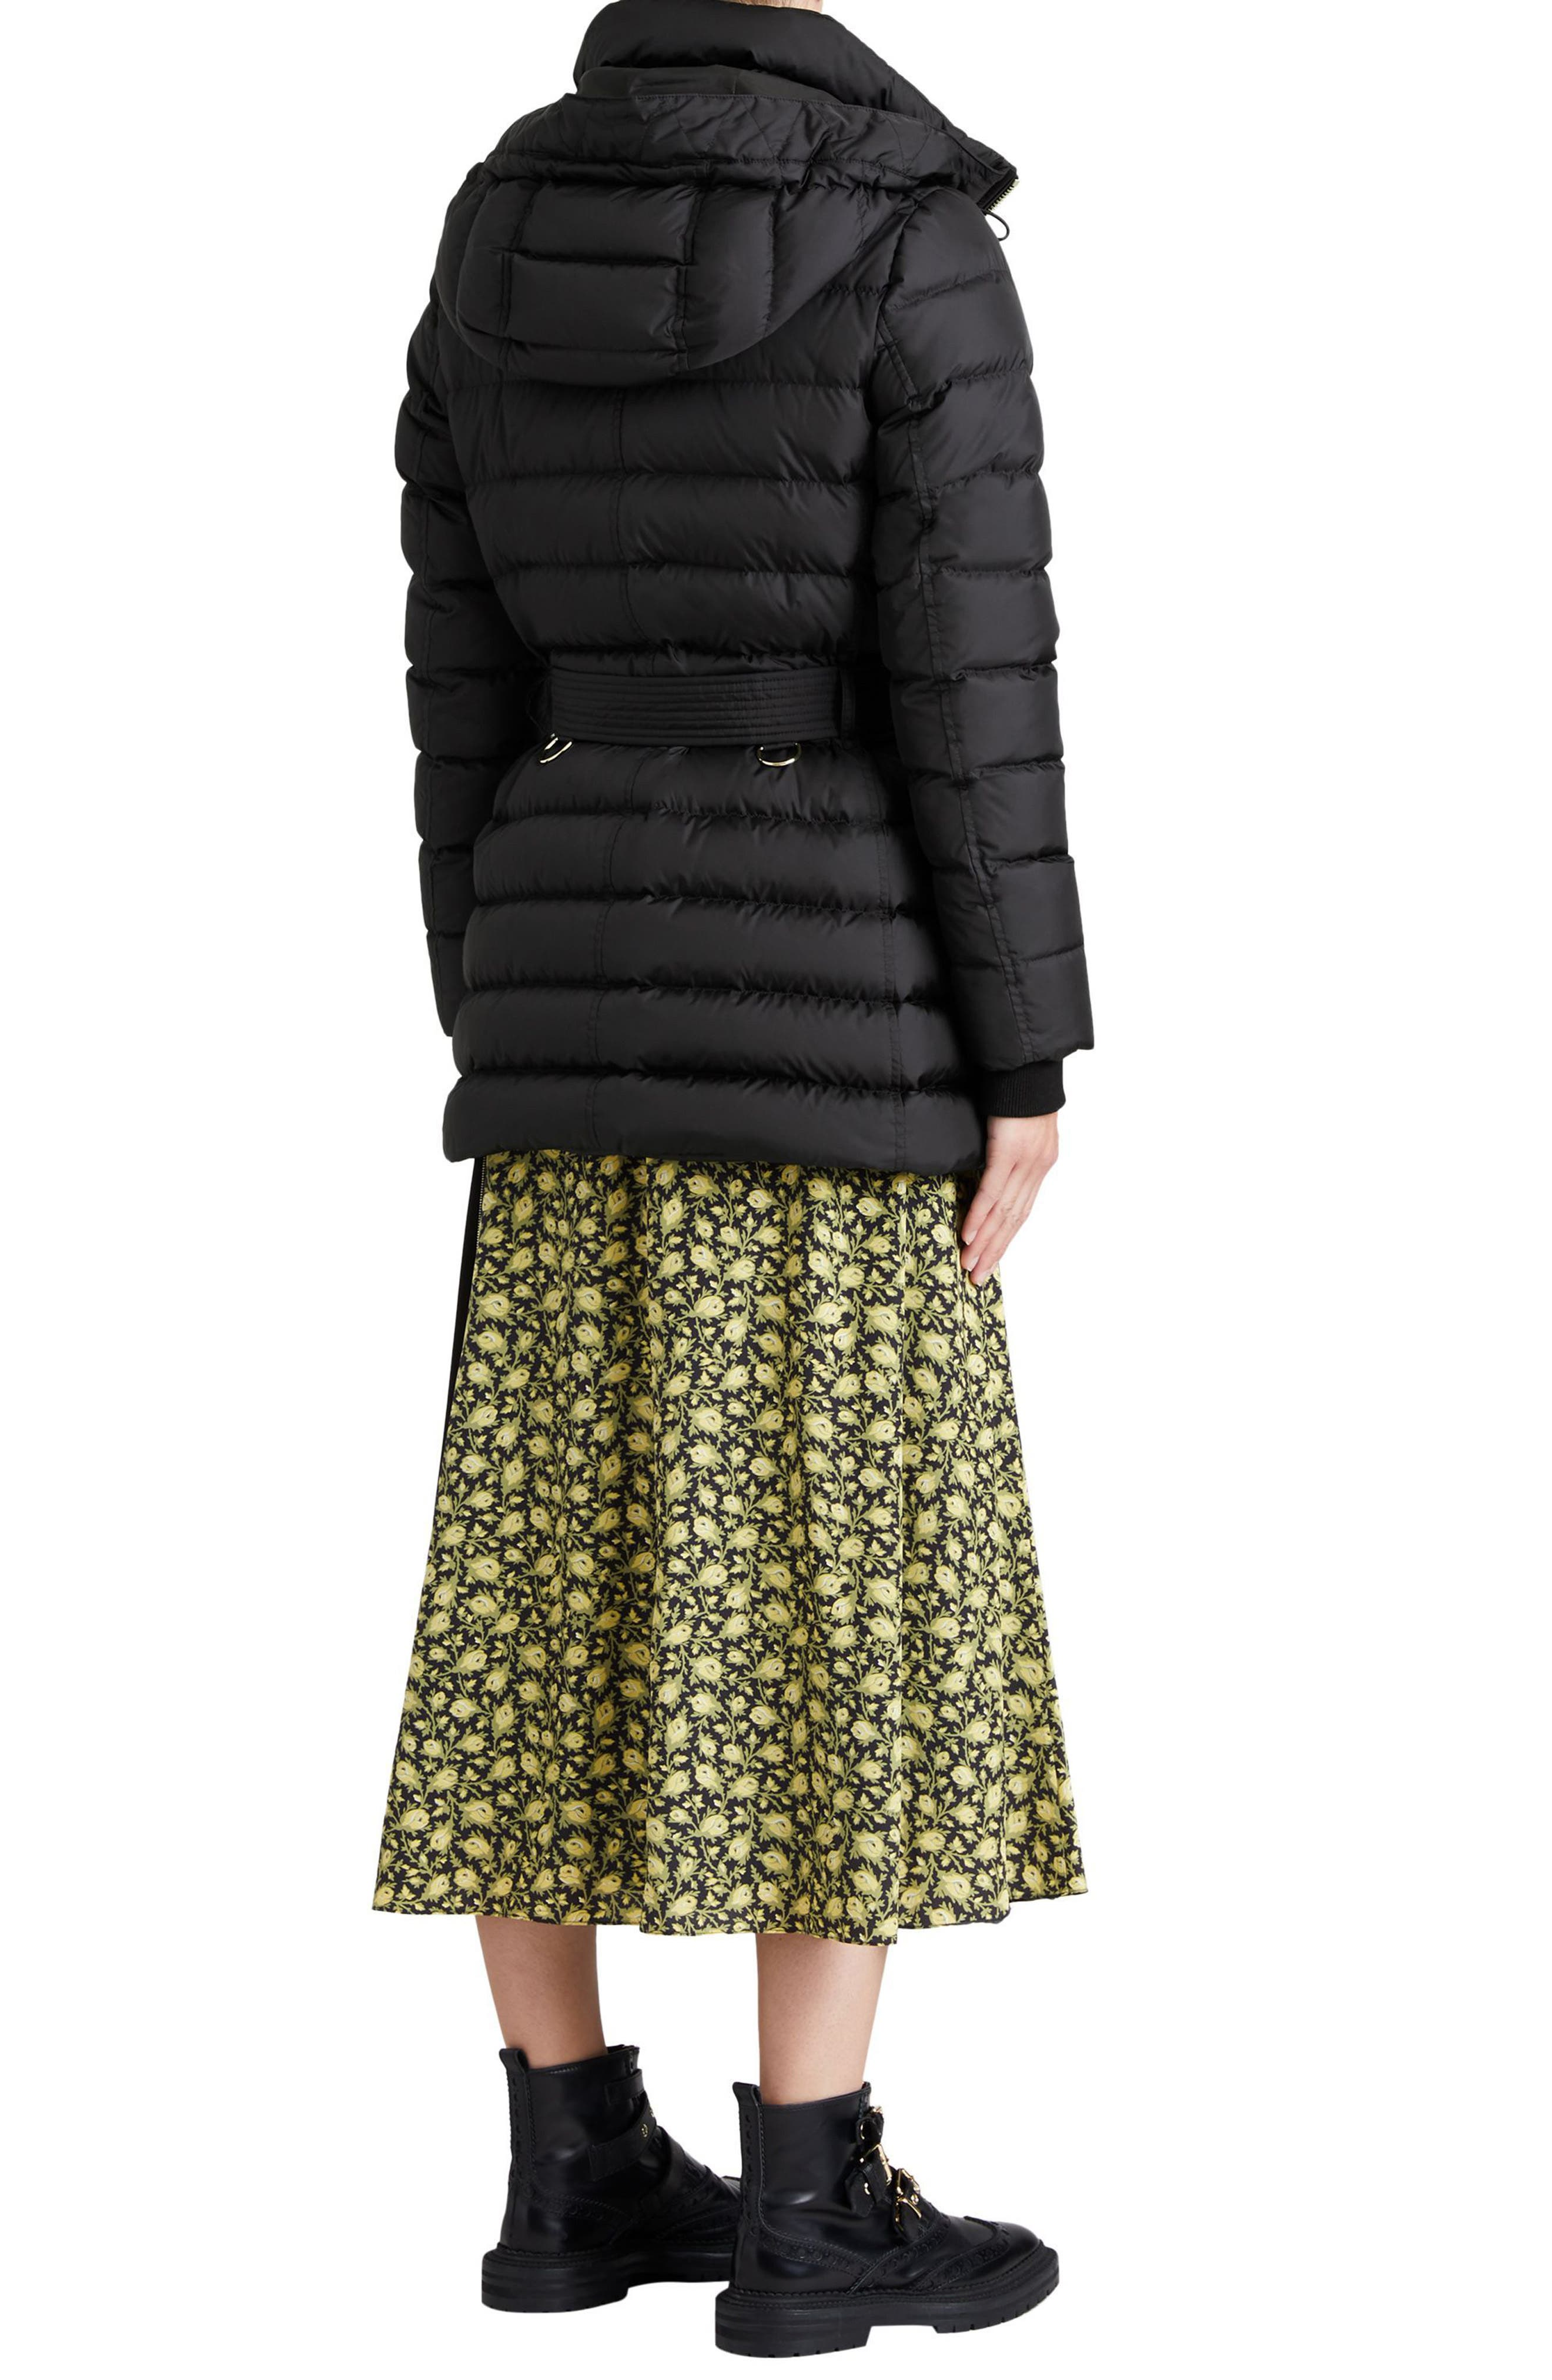 Limefield Hooded Puffer Coat,                             Alternate thumbnail 11, color,                             001